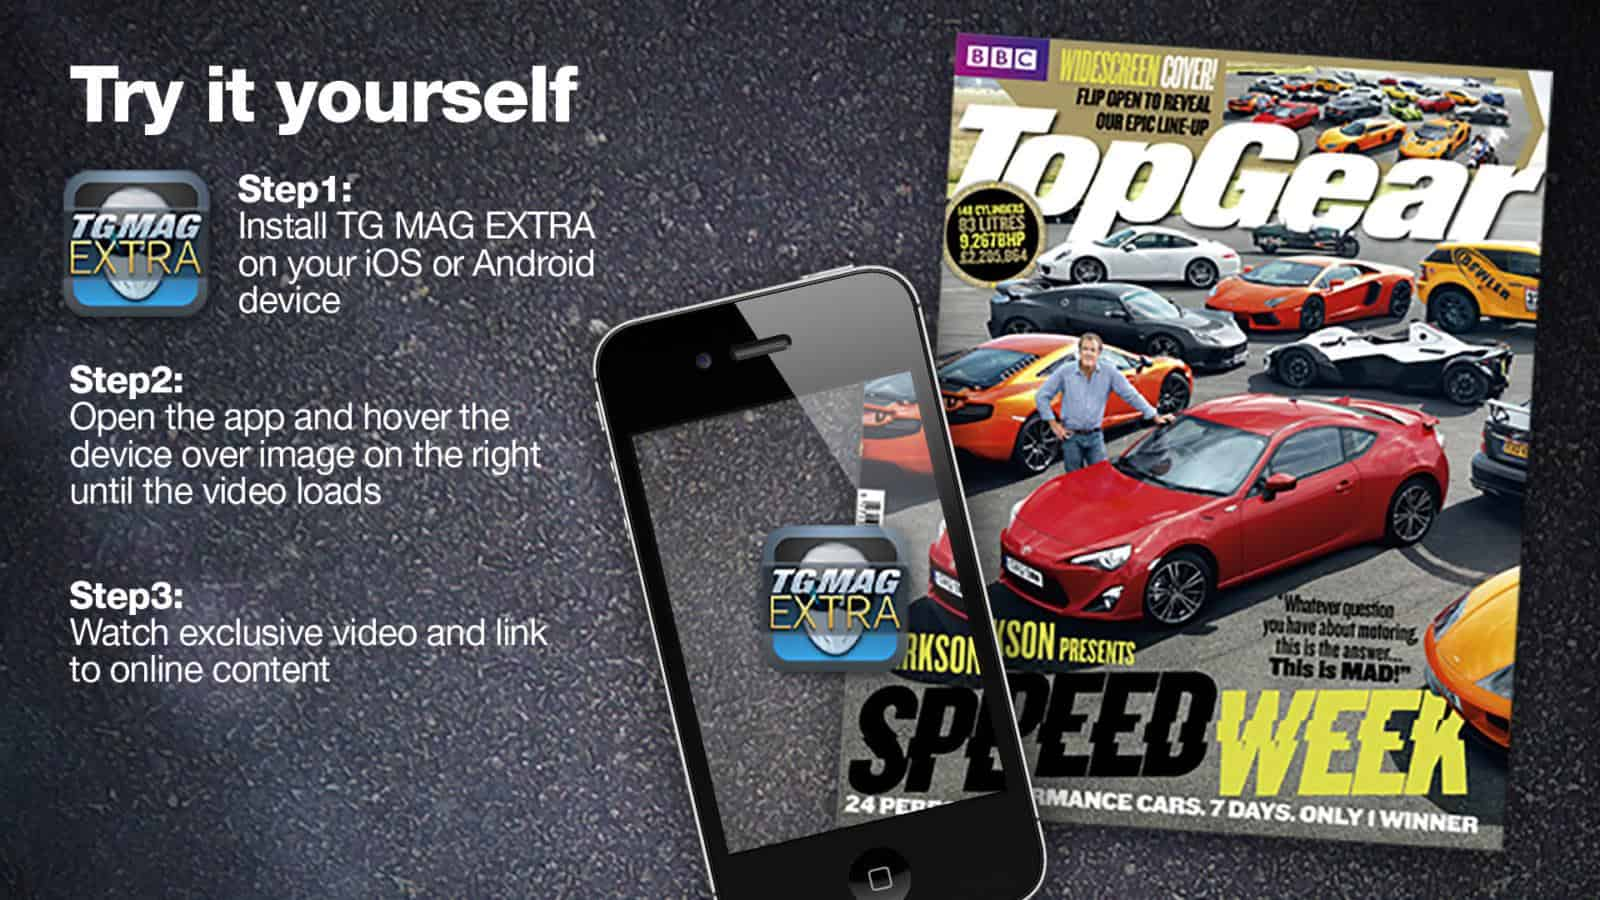 Top Gear AR magazine and app